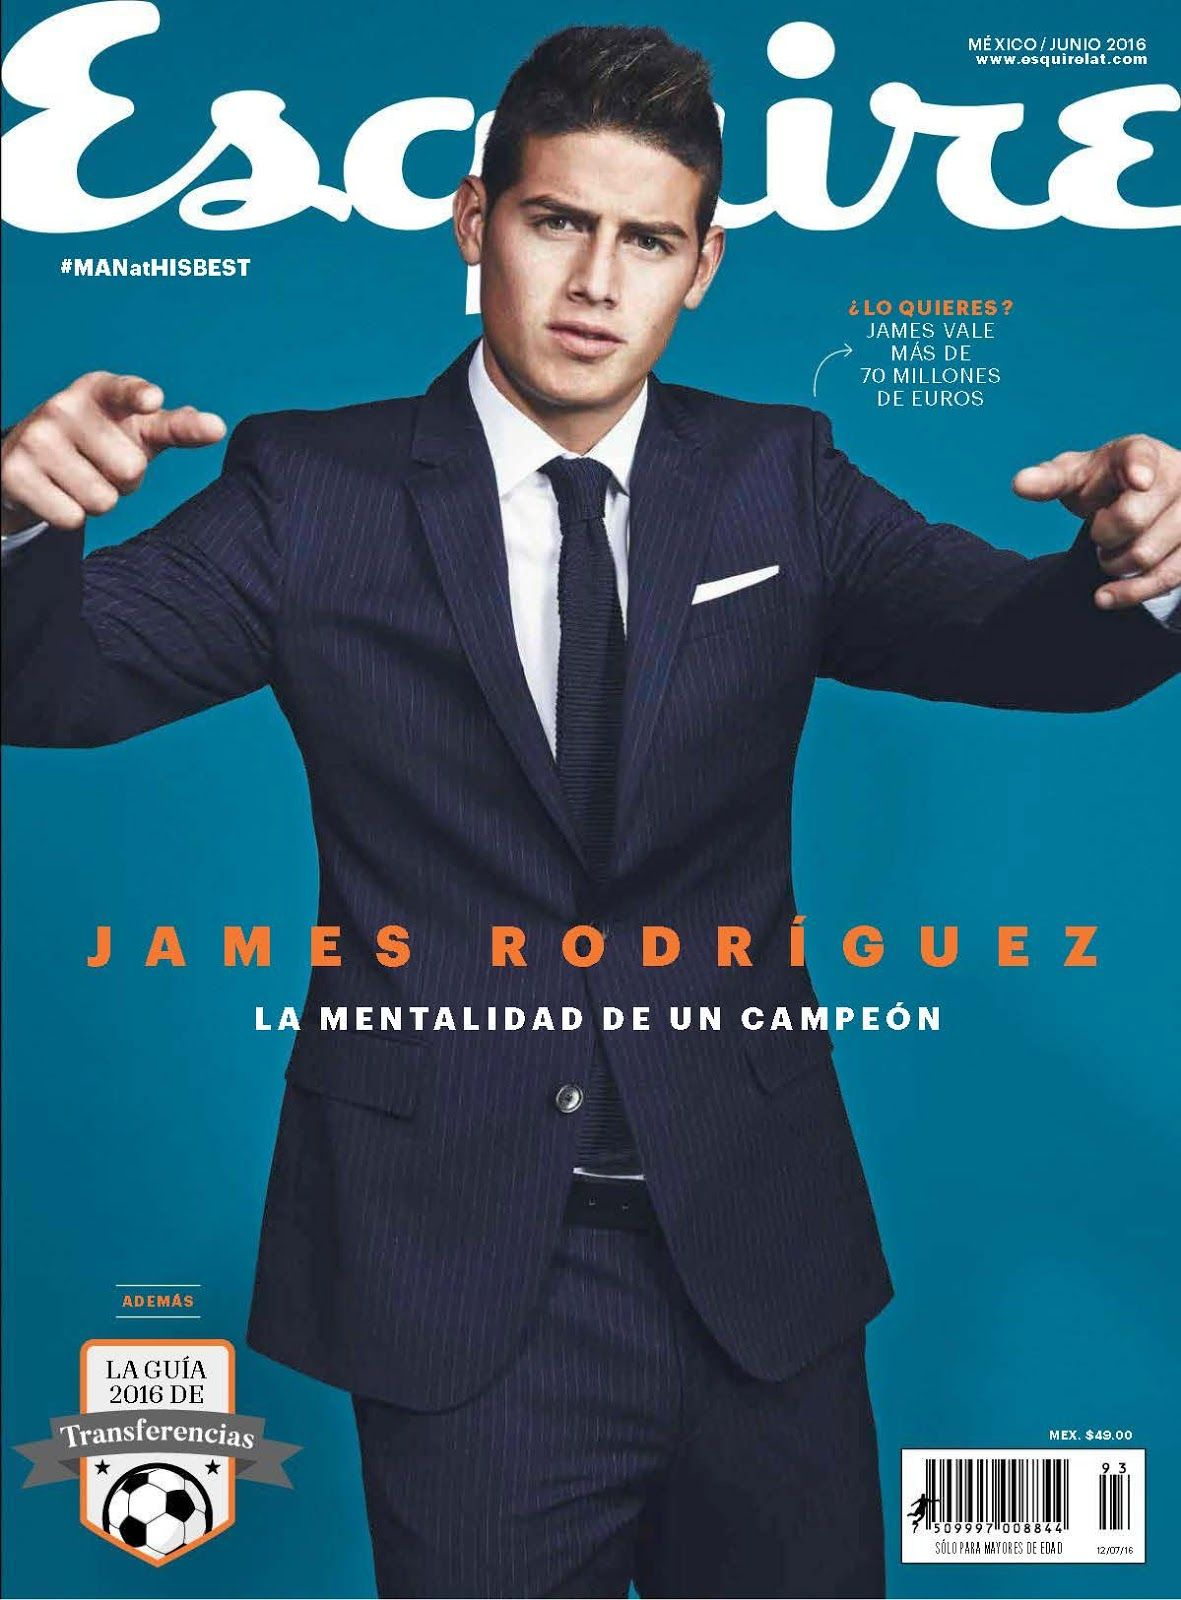 Male Fashion Trends James Rodriguez Para Esquire Mexico Junio 2016 Por John Russo